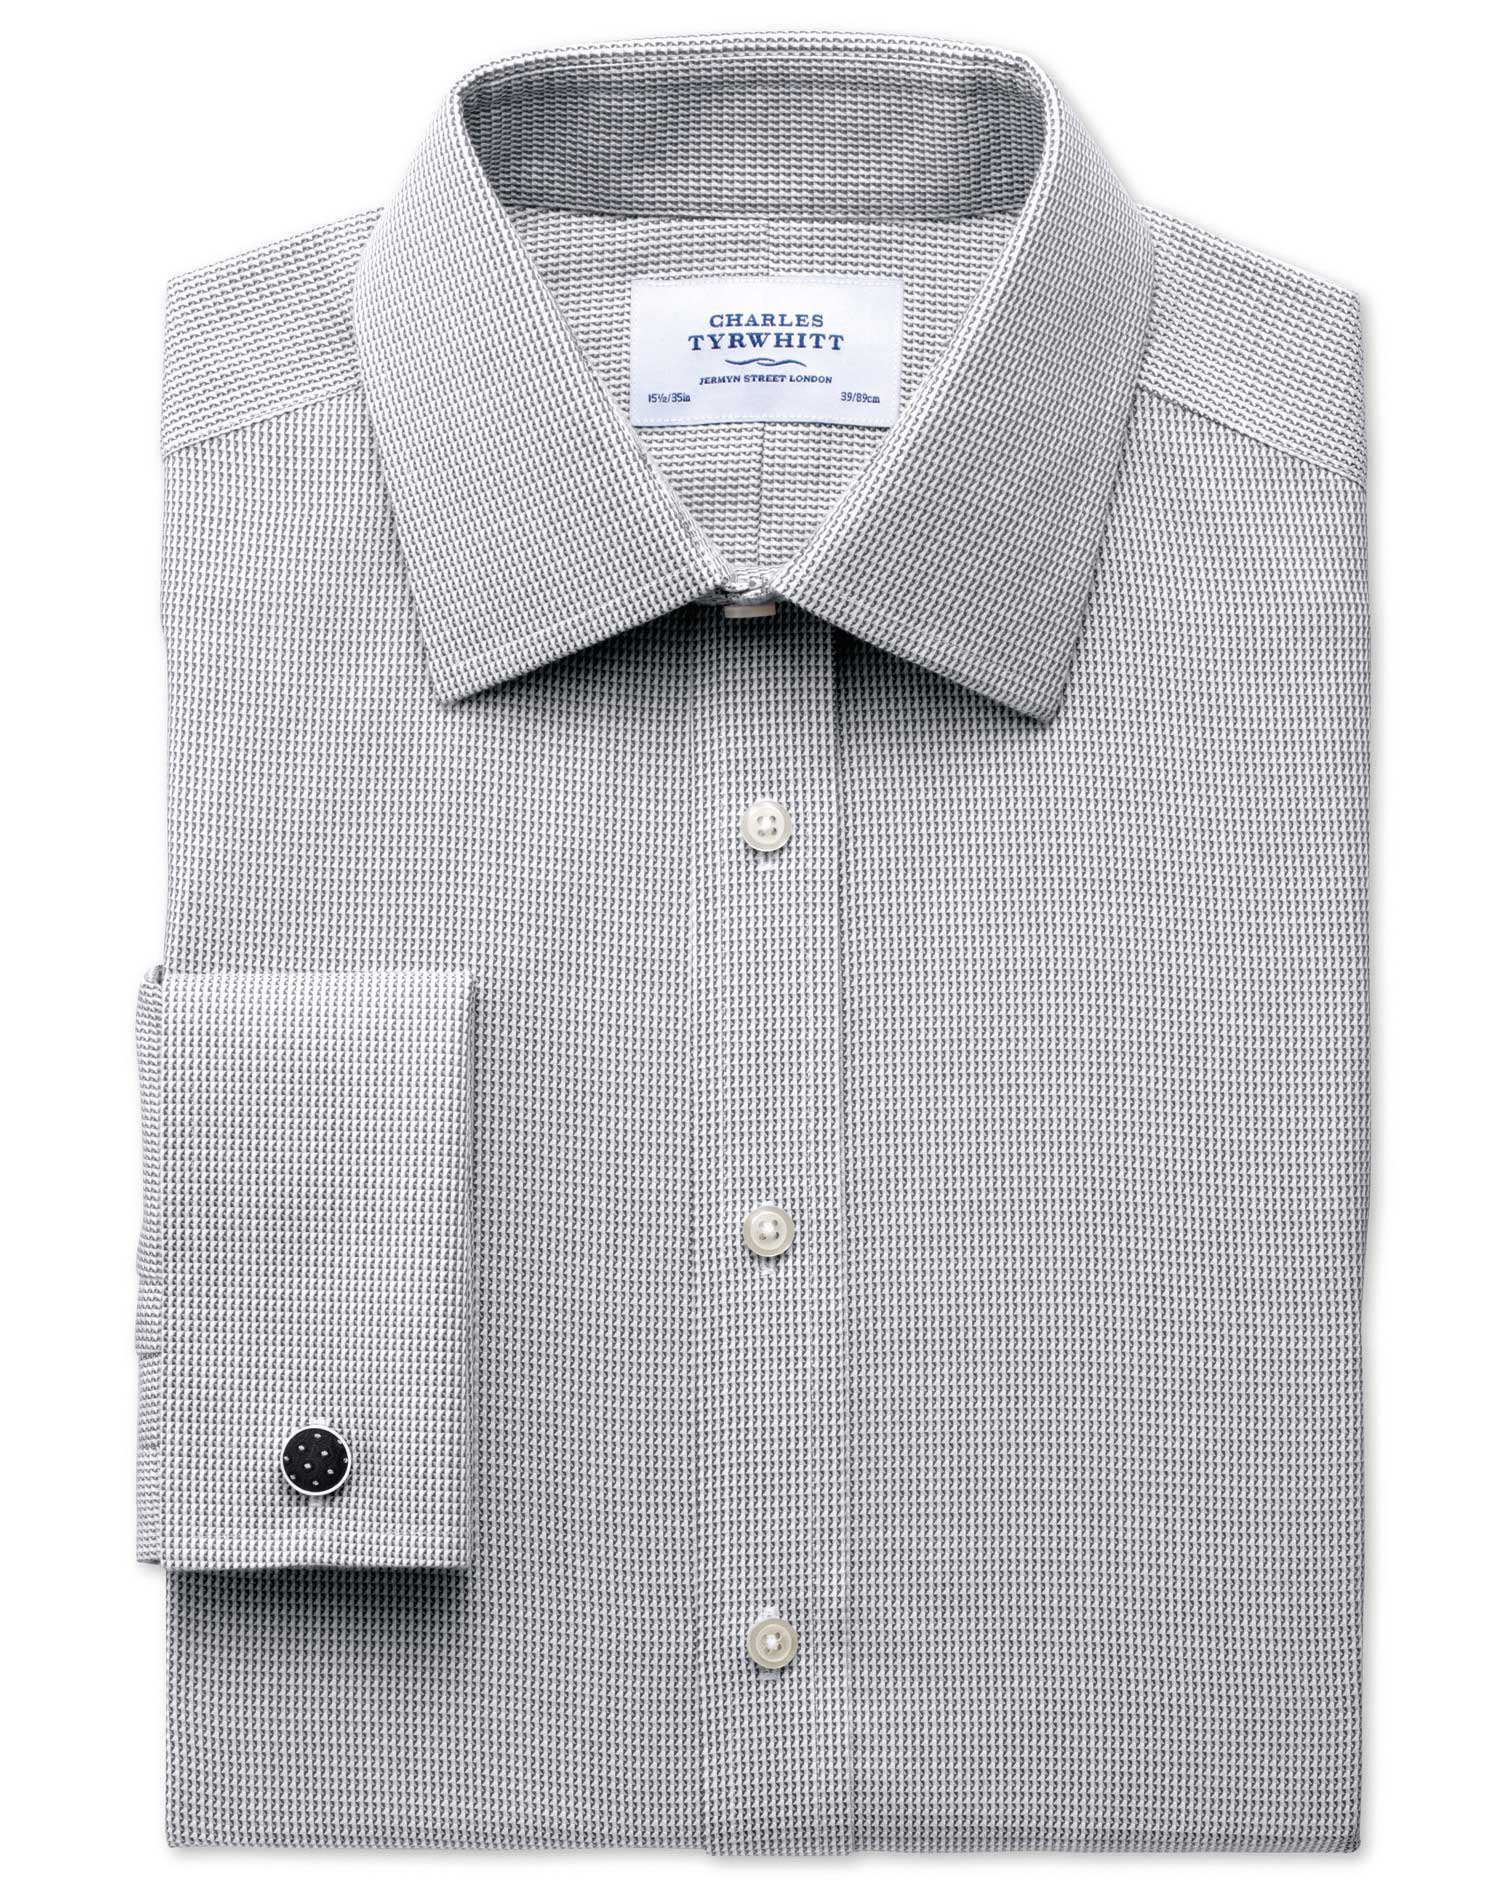 Classic Fit Non-Iron Grey Cotton Formal Shirt Single Cuff Size 15/35 by Charles Tyrwhitt